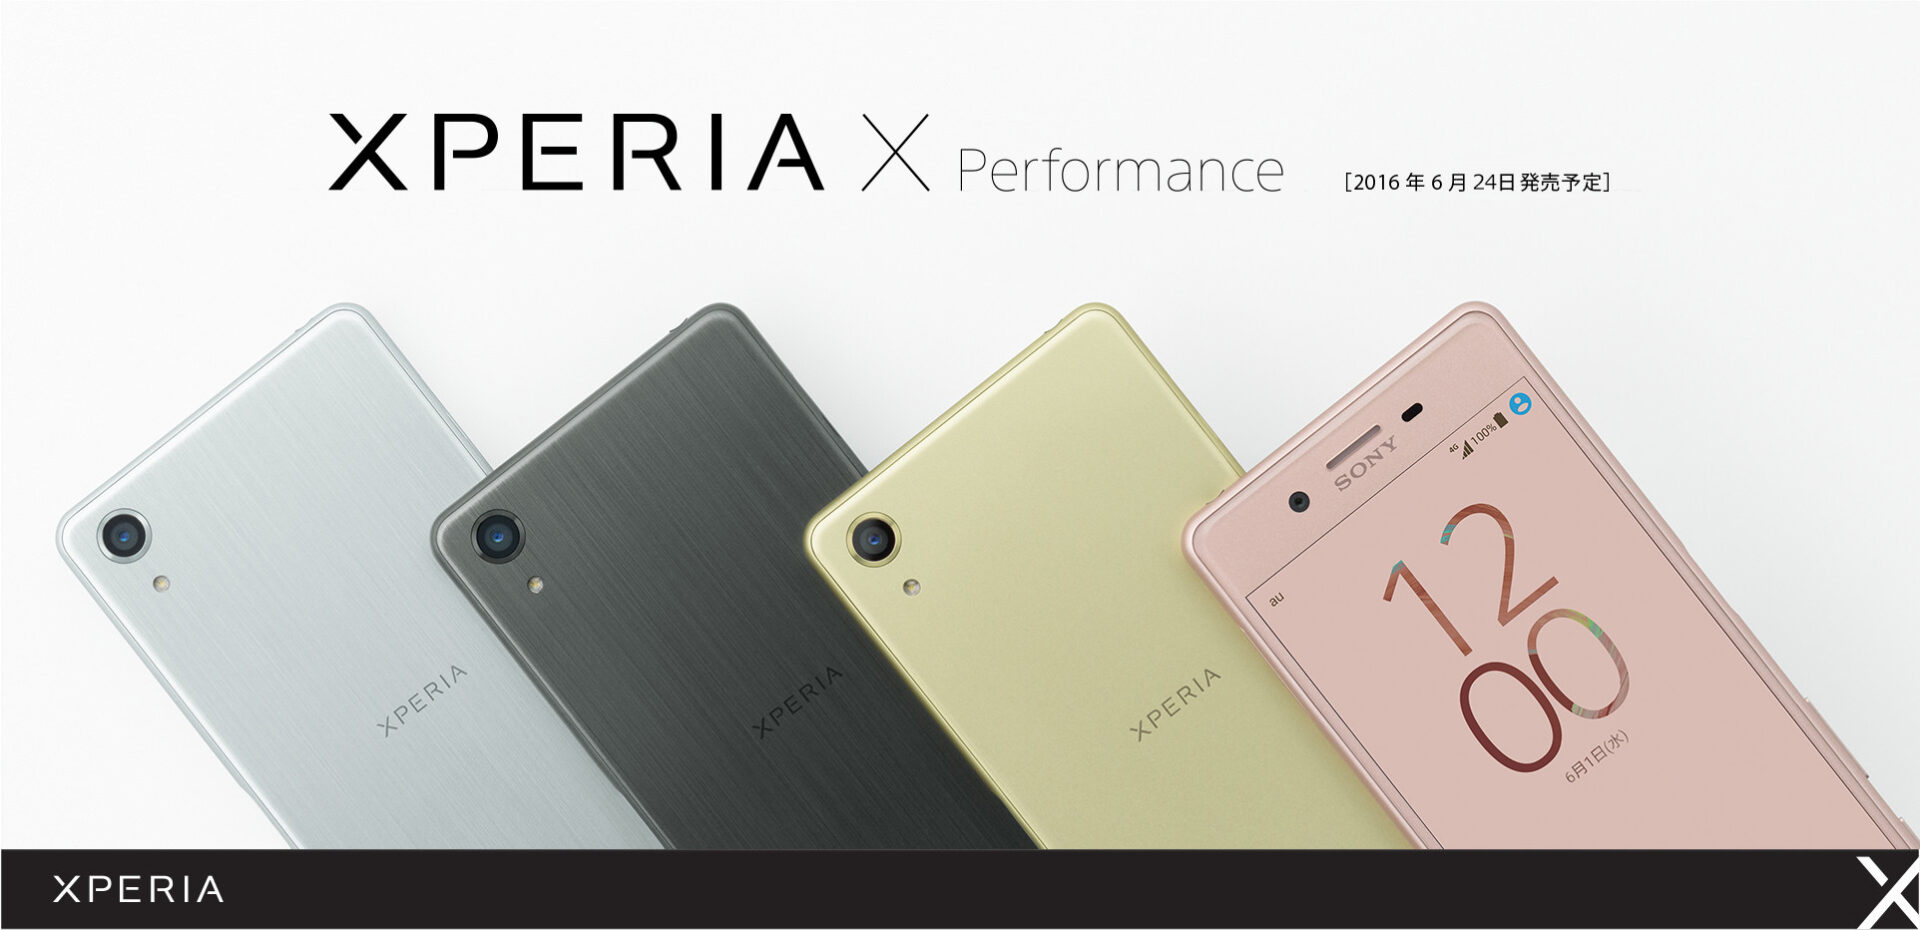 Xperia X Performance アイキャッチ